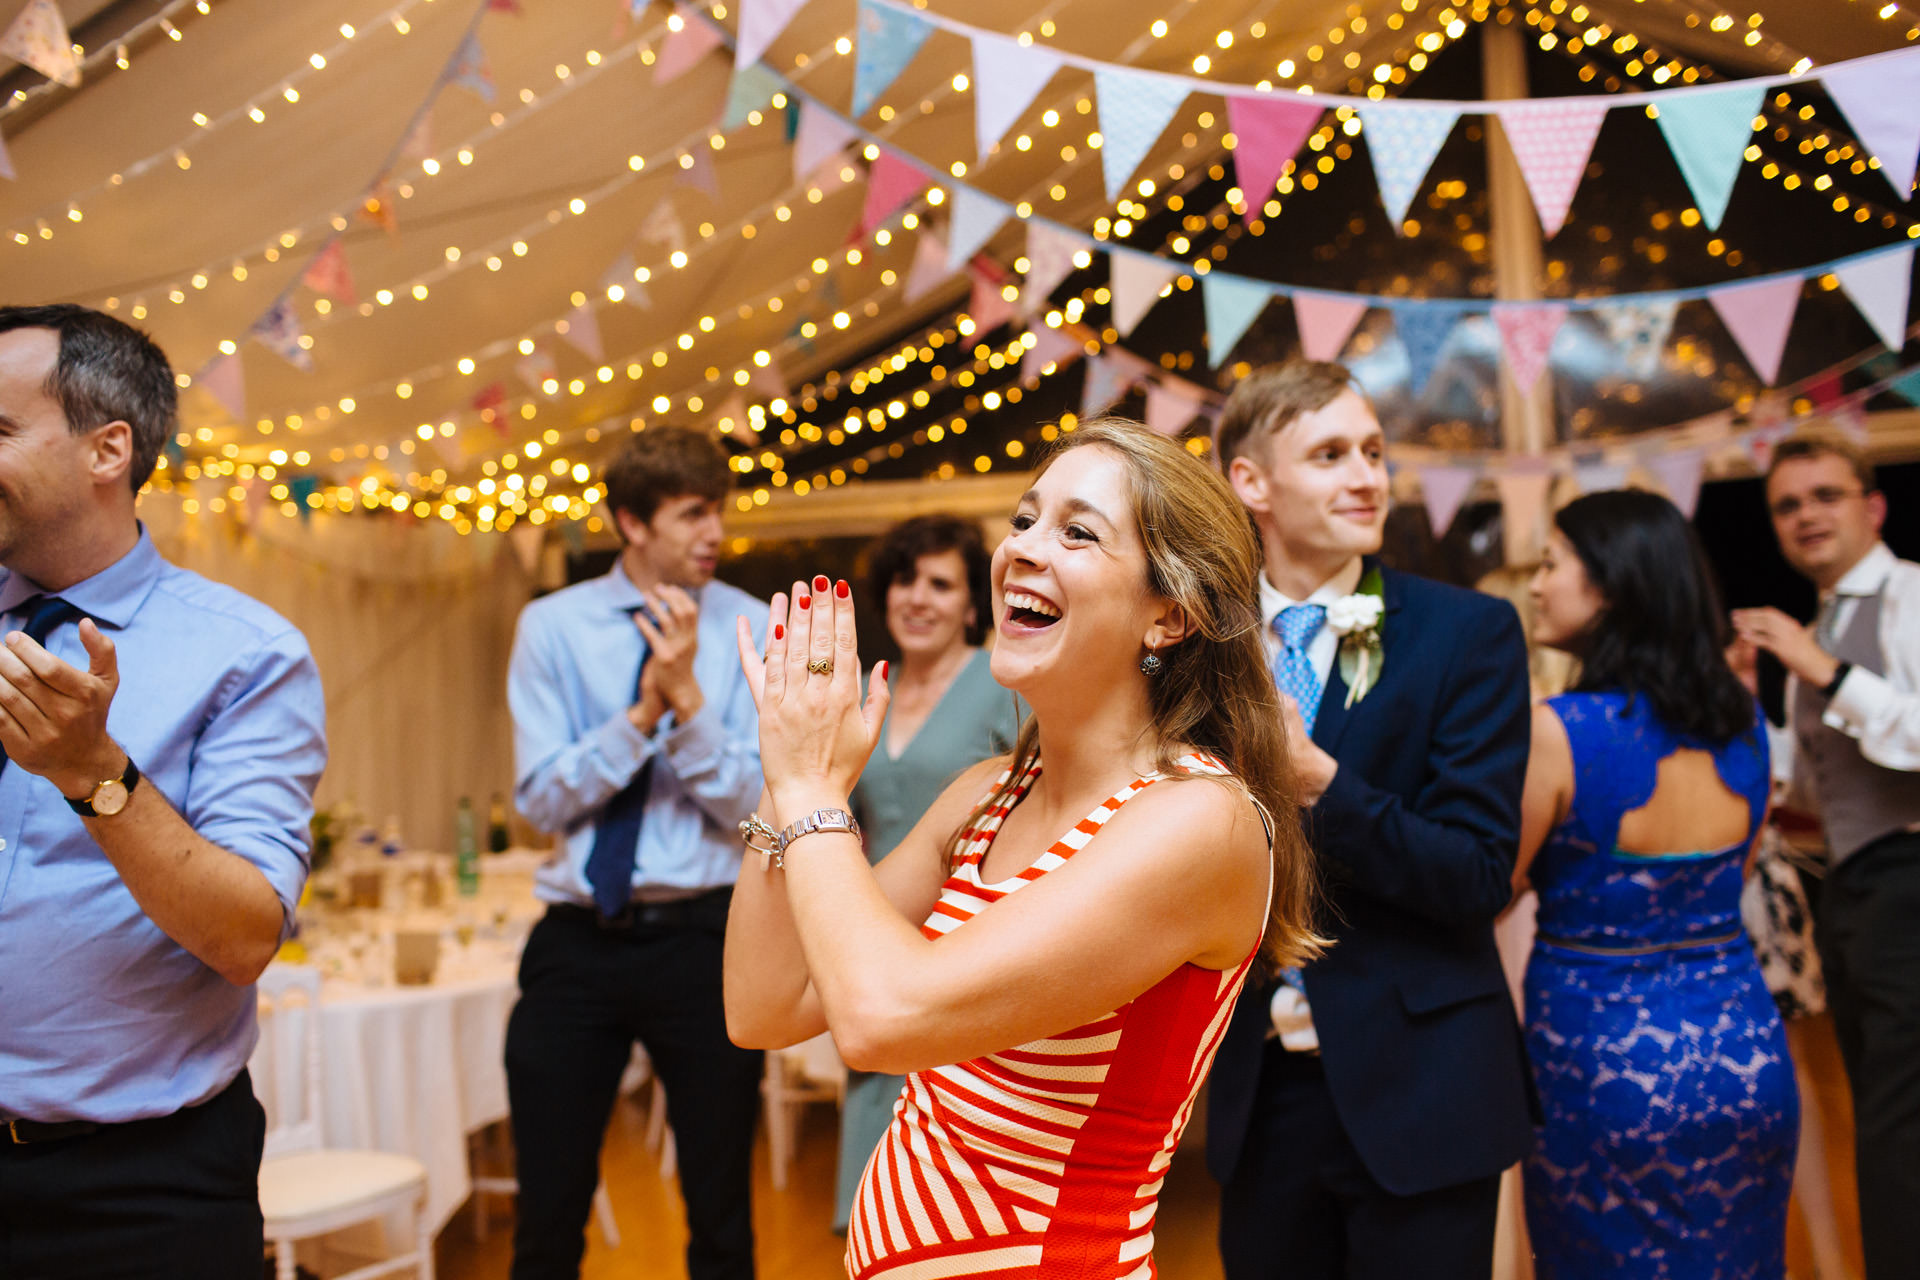 wedding guest clapping and dancing